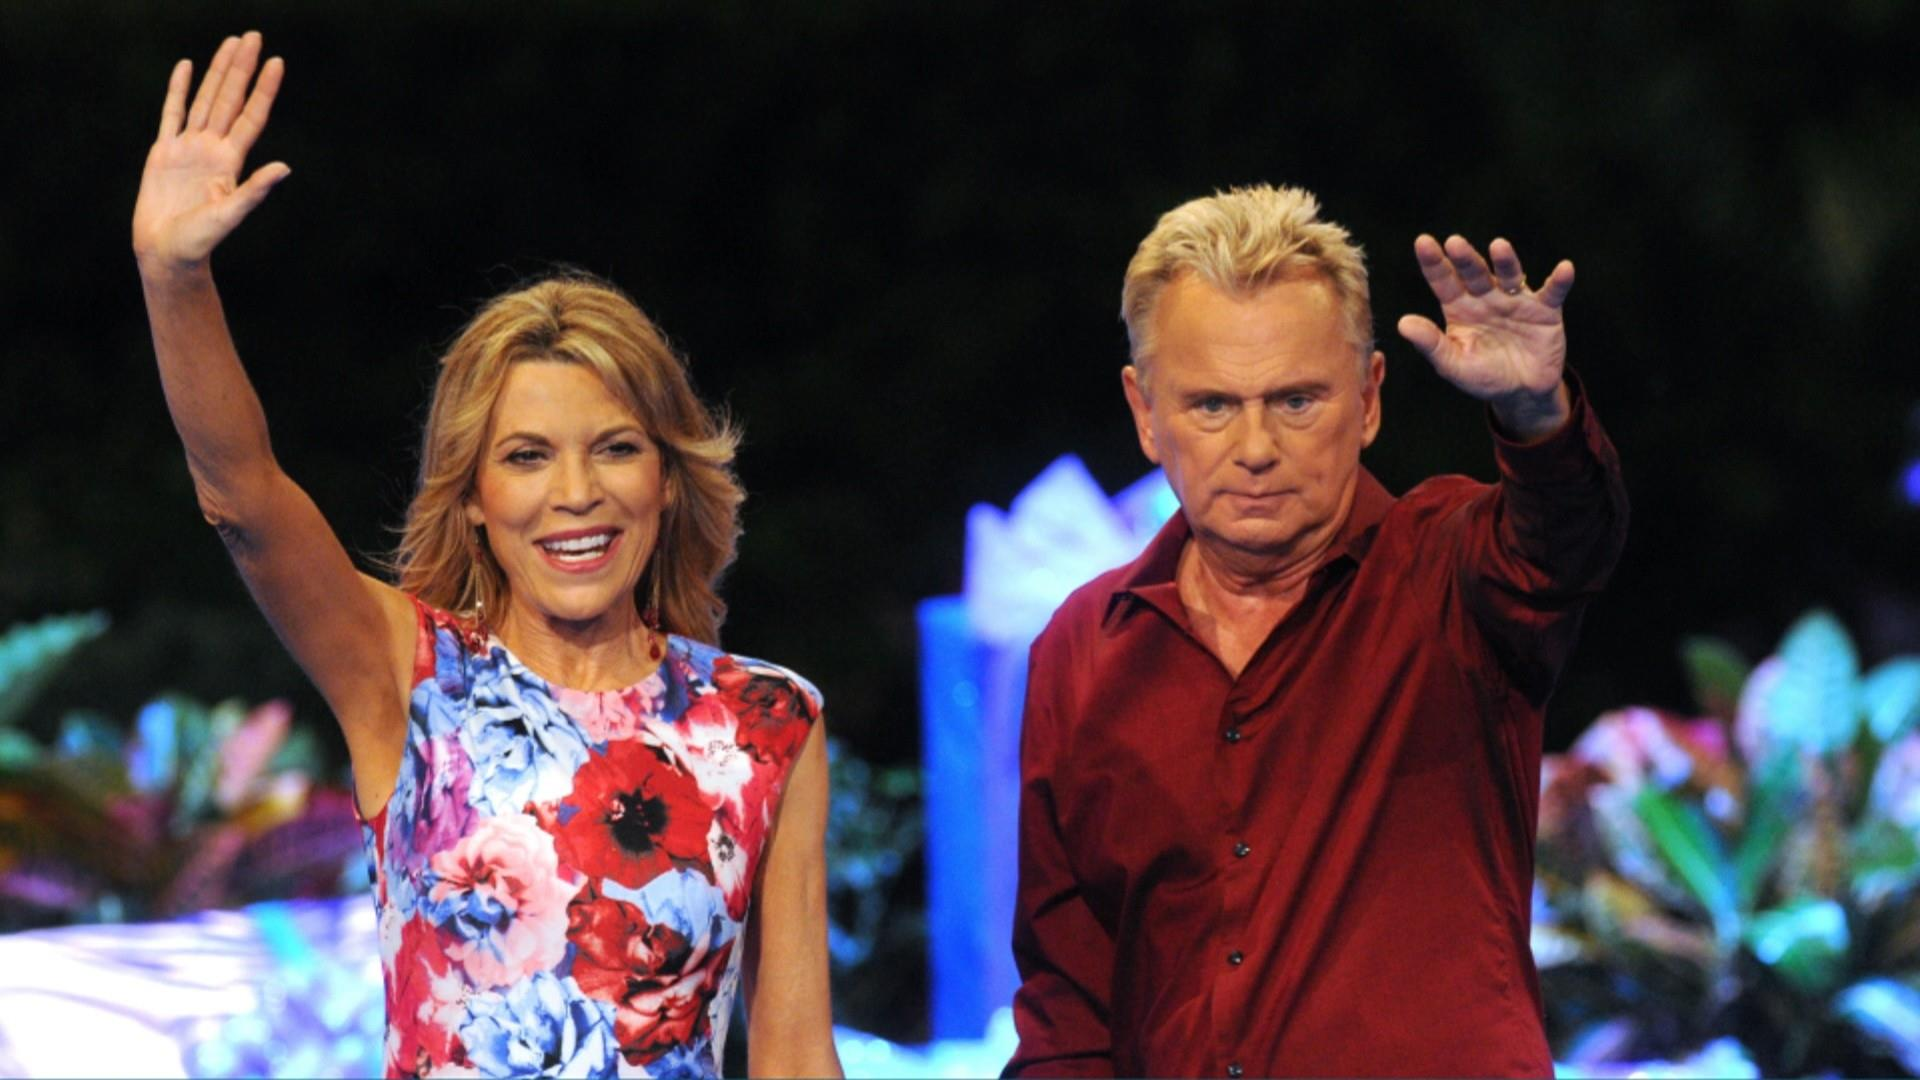 Vanna White Opens Up About Hosting Wheel Of Fortune At Last Minute